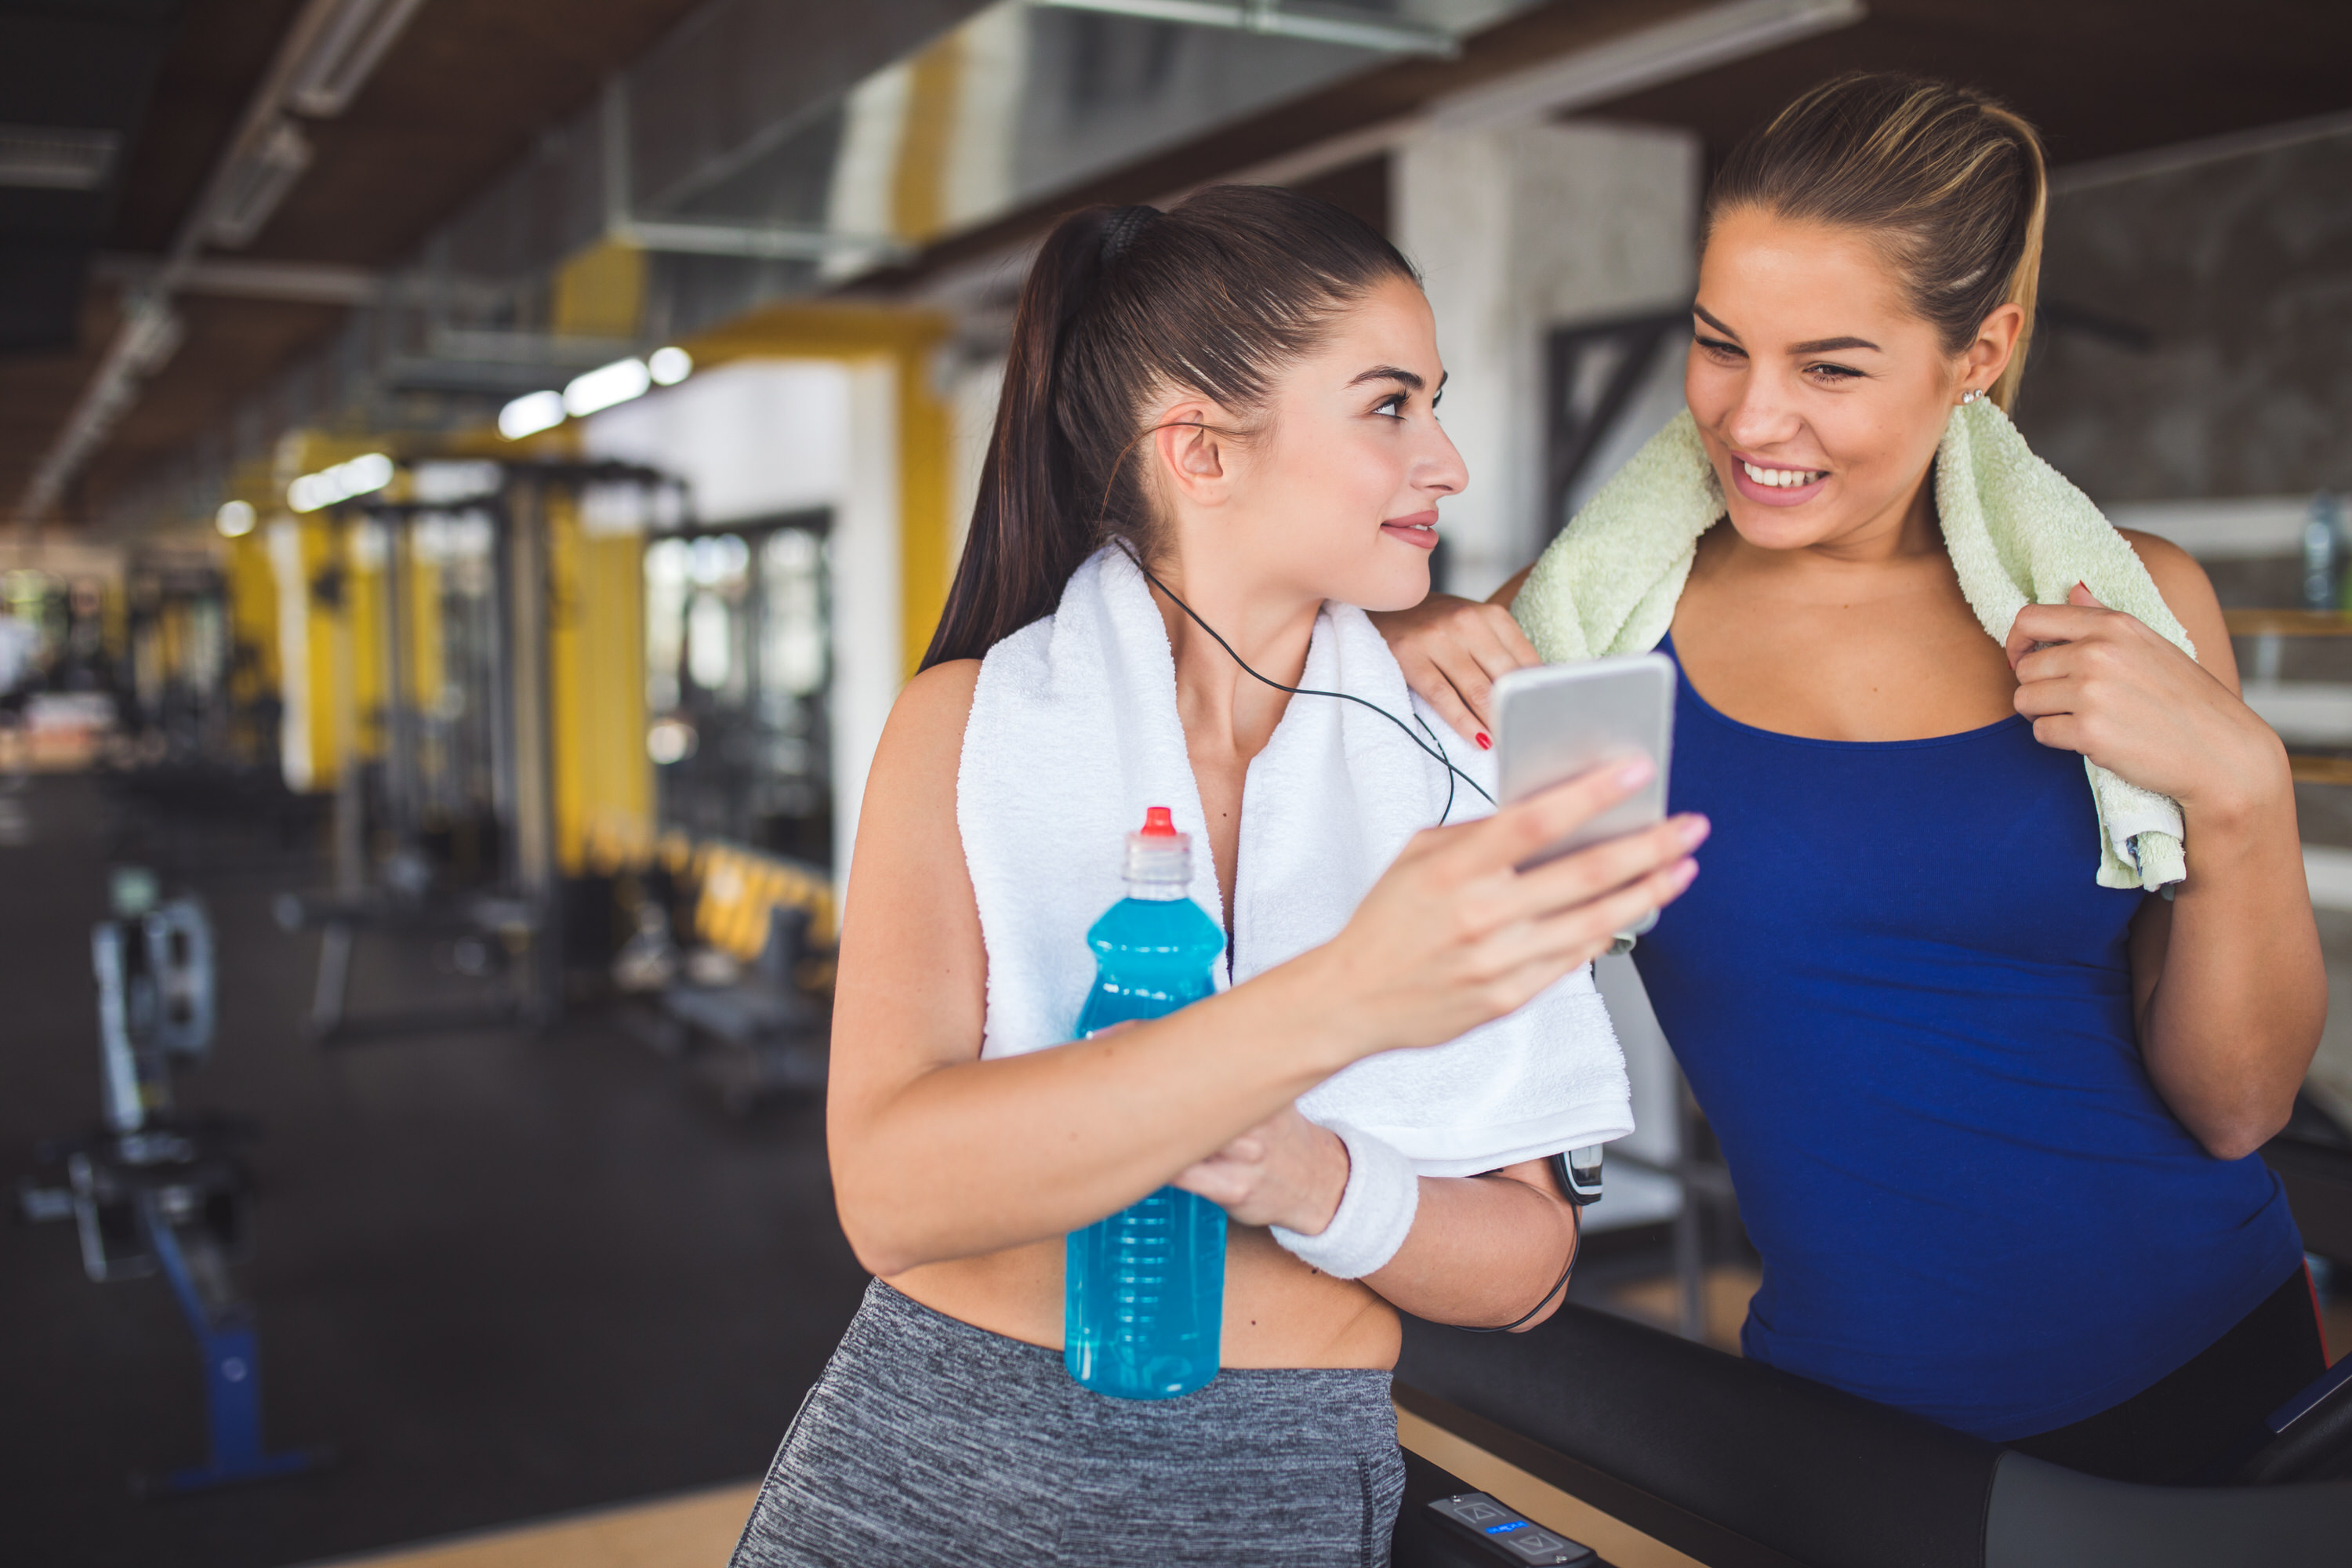 Young women using mobile phone while exercising at gym.